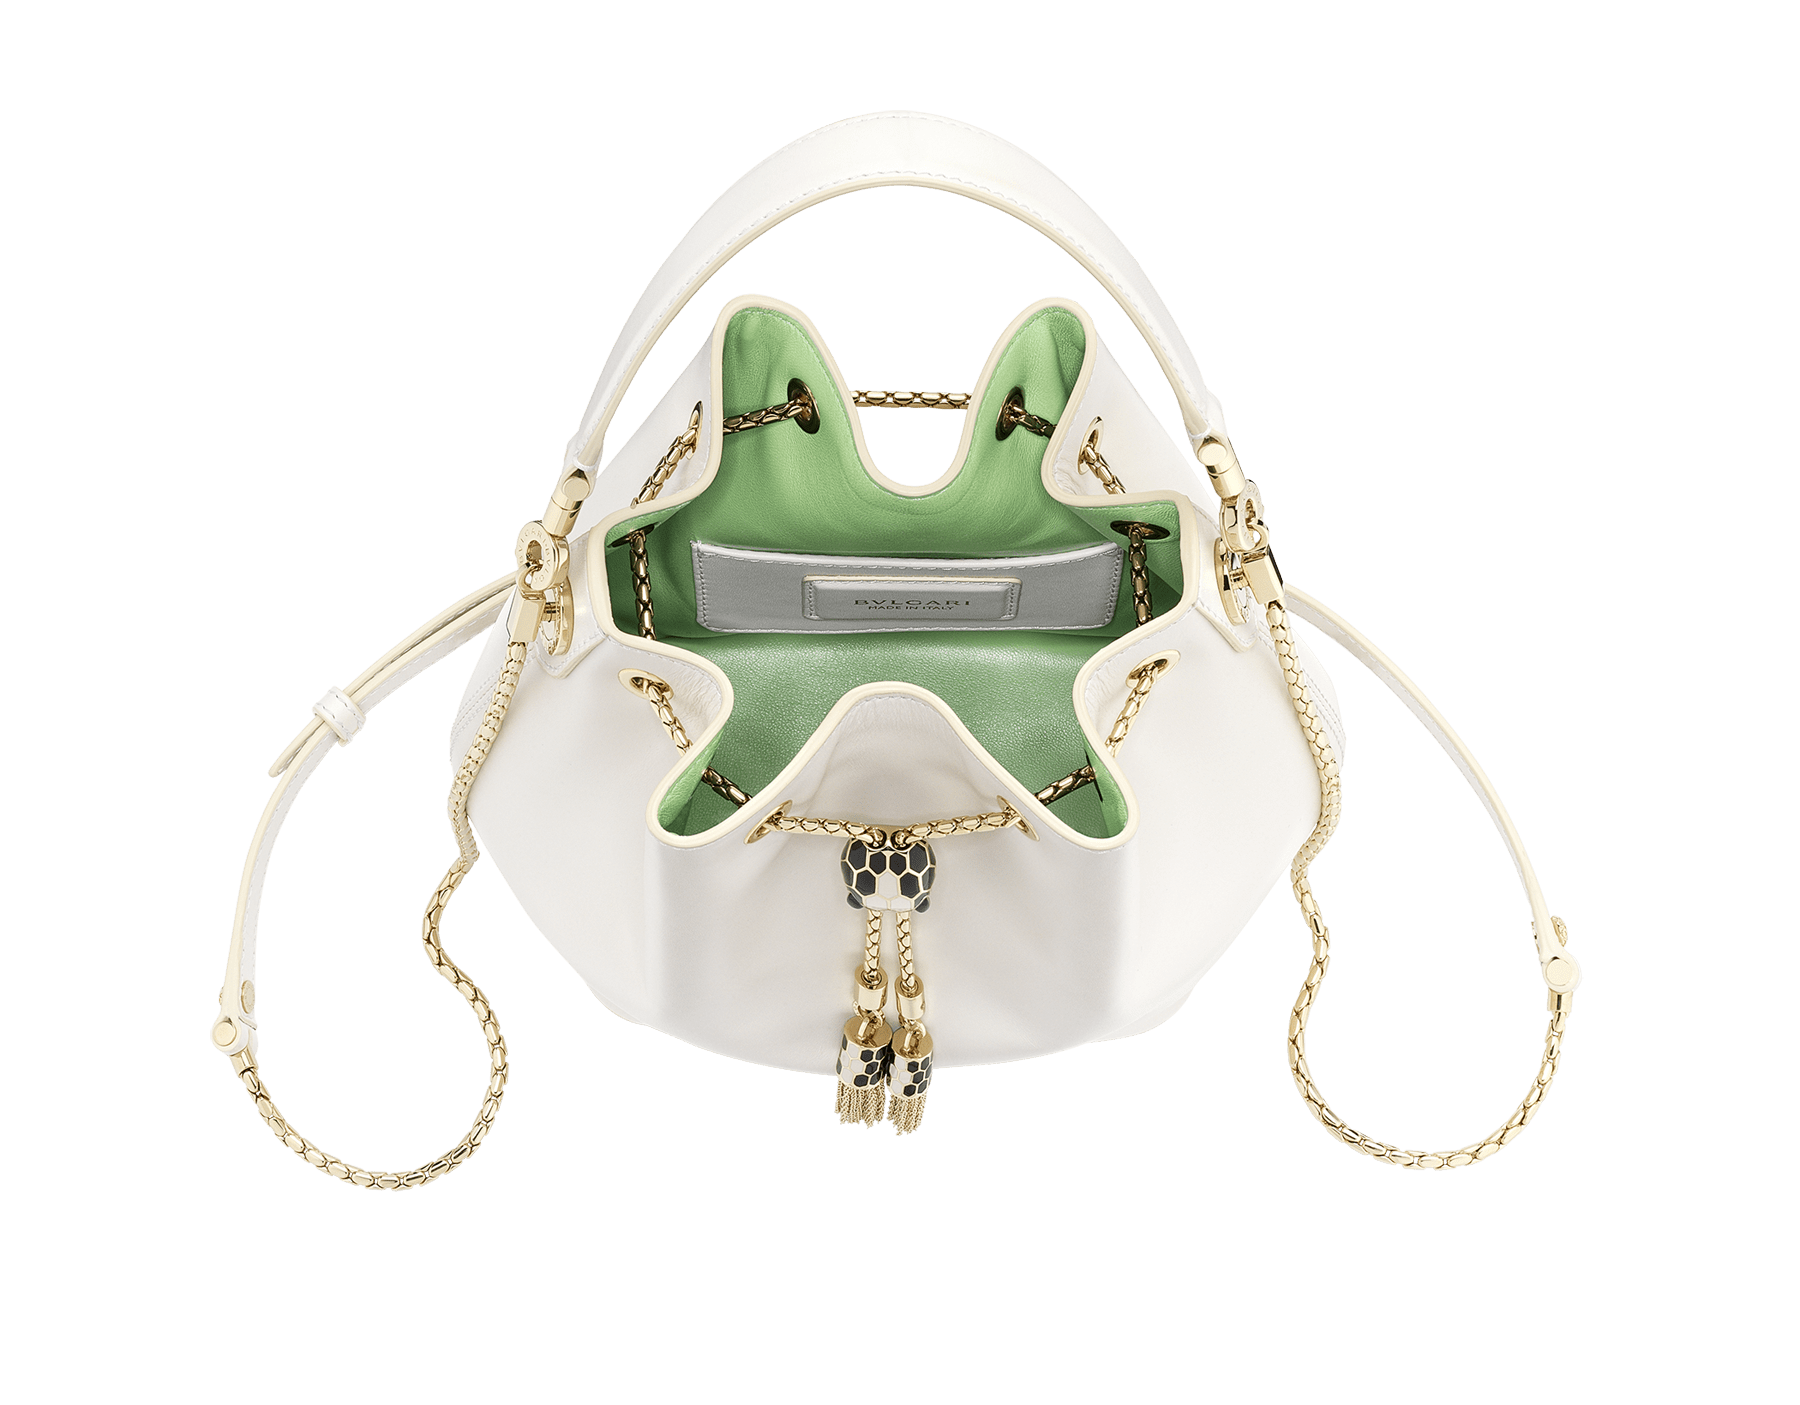 """Serpenti Forever"" bucket in white agate smooth calf leather and mint nappa internal lining. Hardware in light gold plated brass and snakehead closure in black and white agate enamel, with eyes in black onyx. 934-CLa image 2"